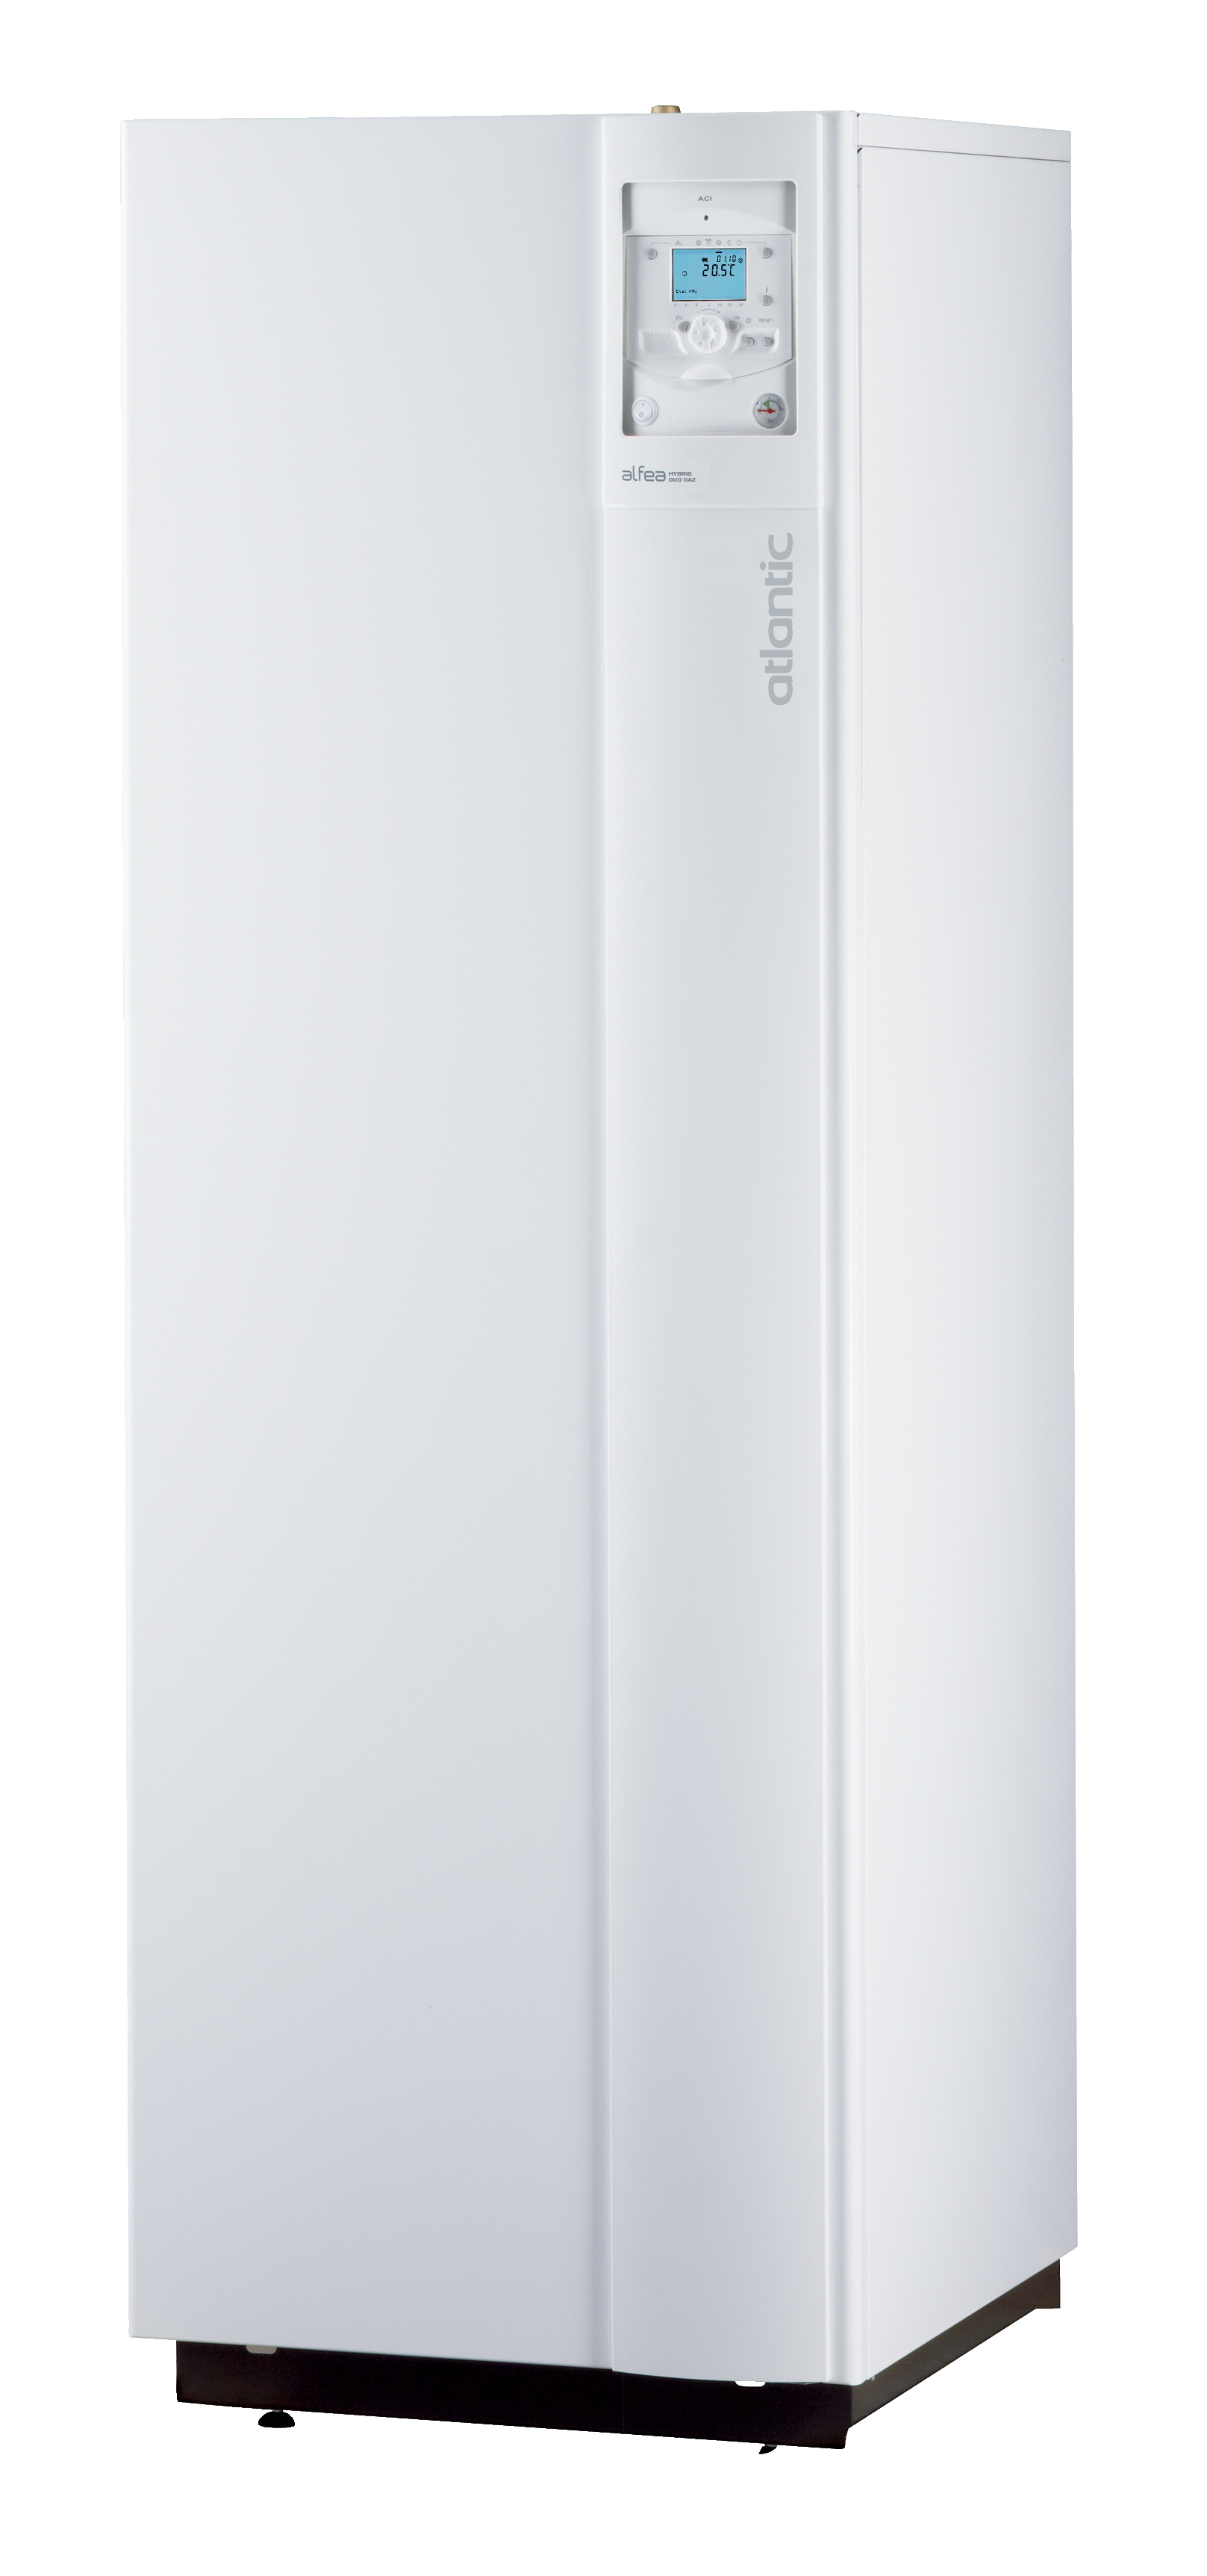 Alfea hybrid duo GAS indoor unit